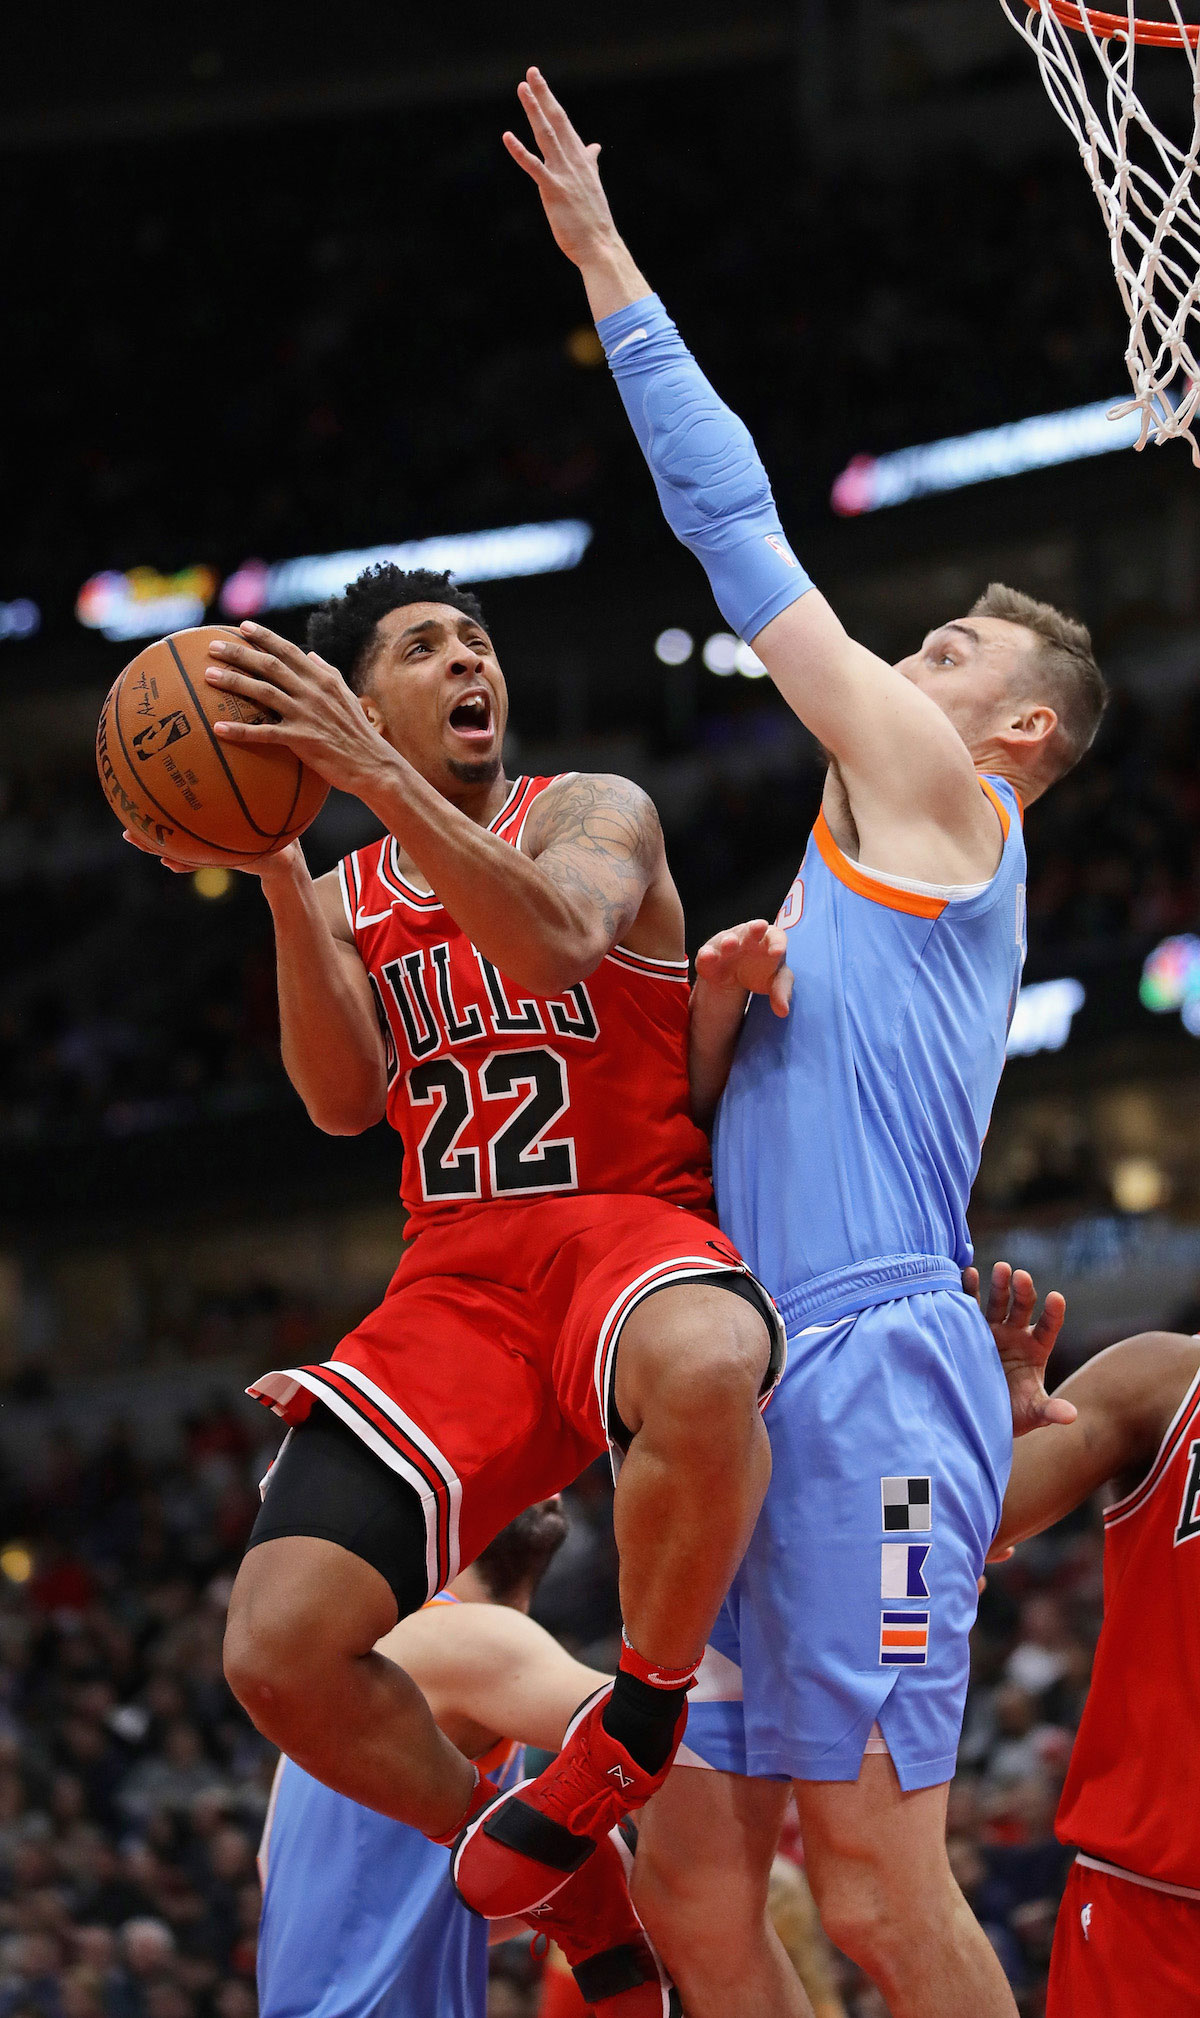 Cameron Payne #22 of the Chicago Bulls goes up for a shot against Sam Dekker #7 of the LA Clippers